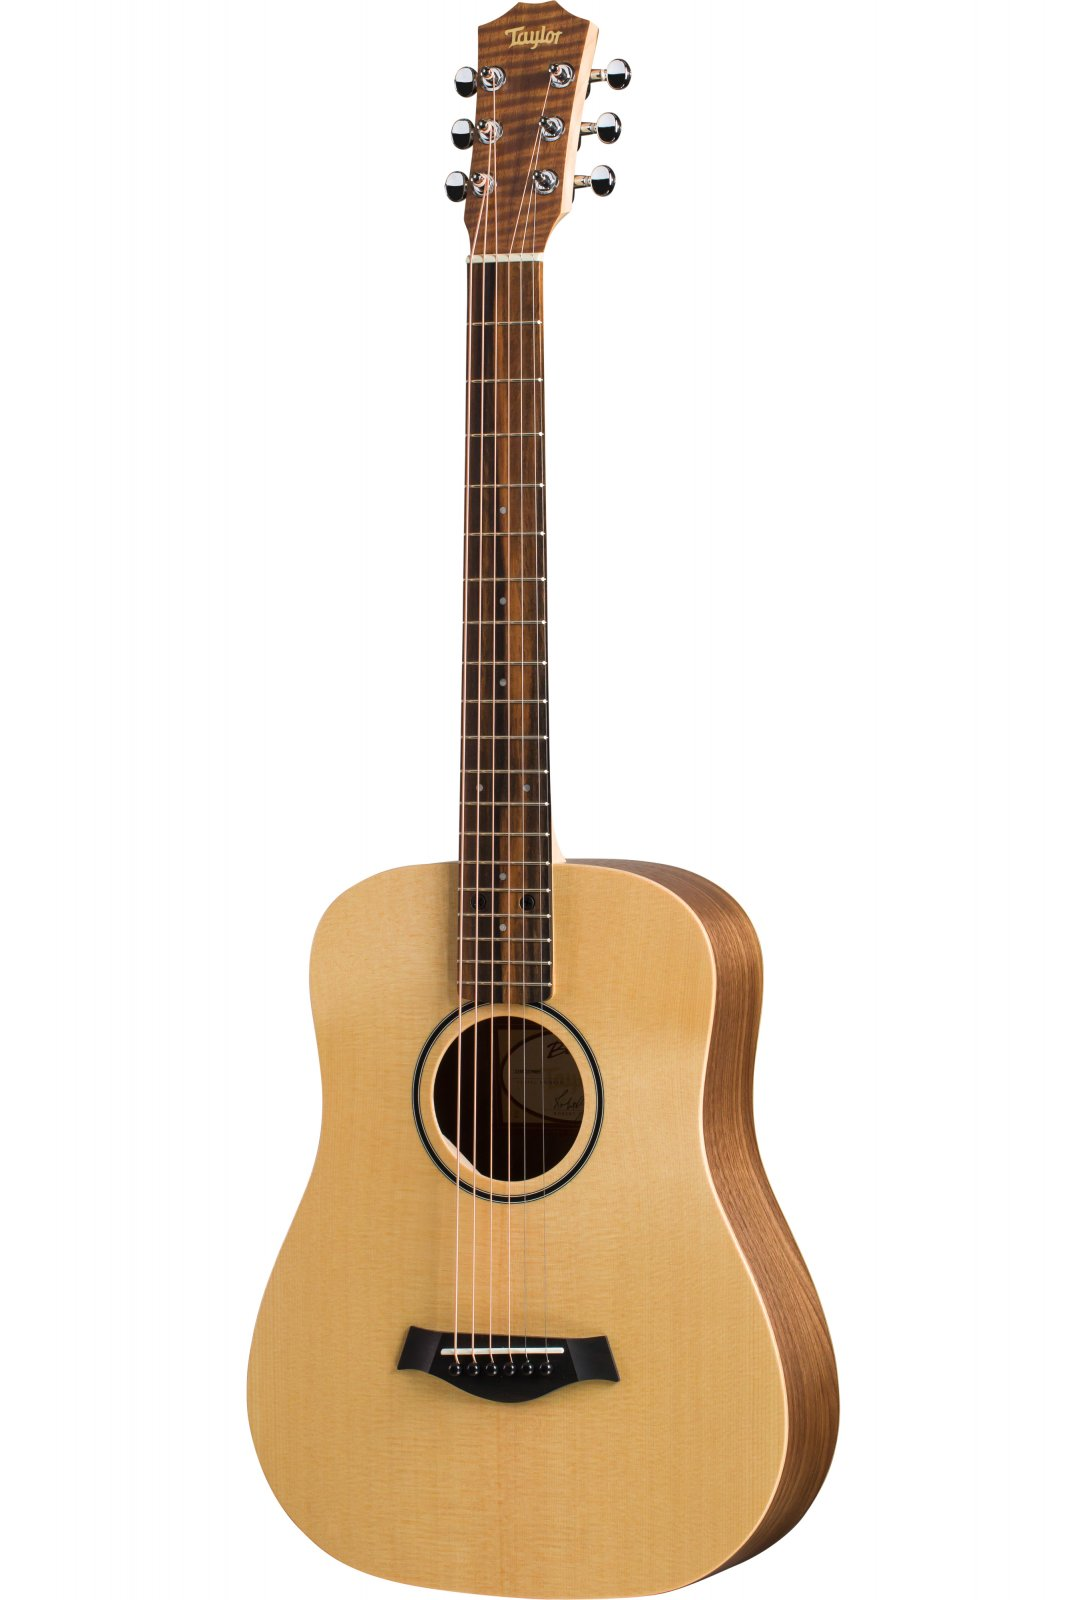 Taylor BT-1 Baby Taylor Acoustic Guitar with Gigbag